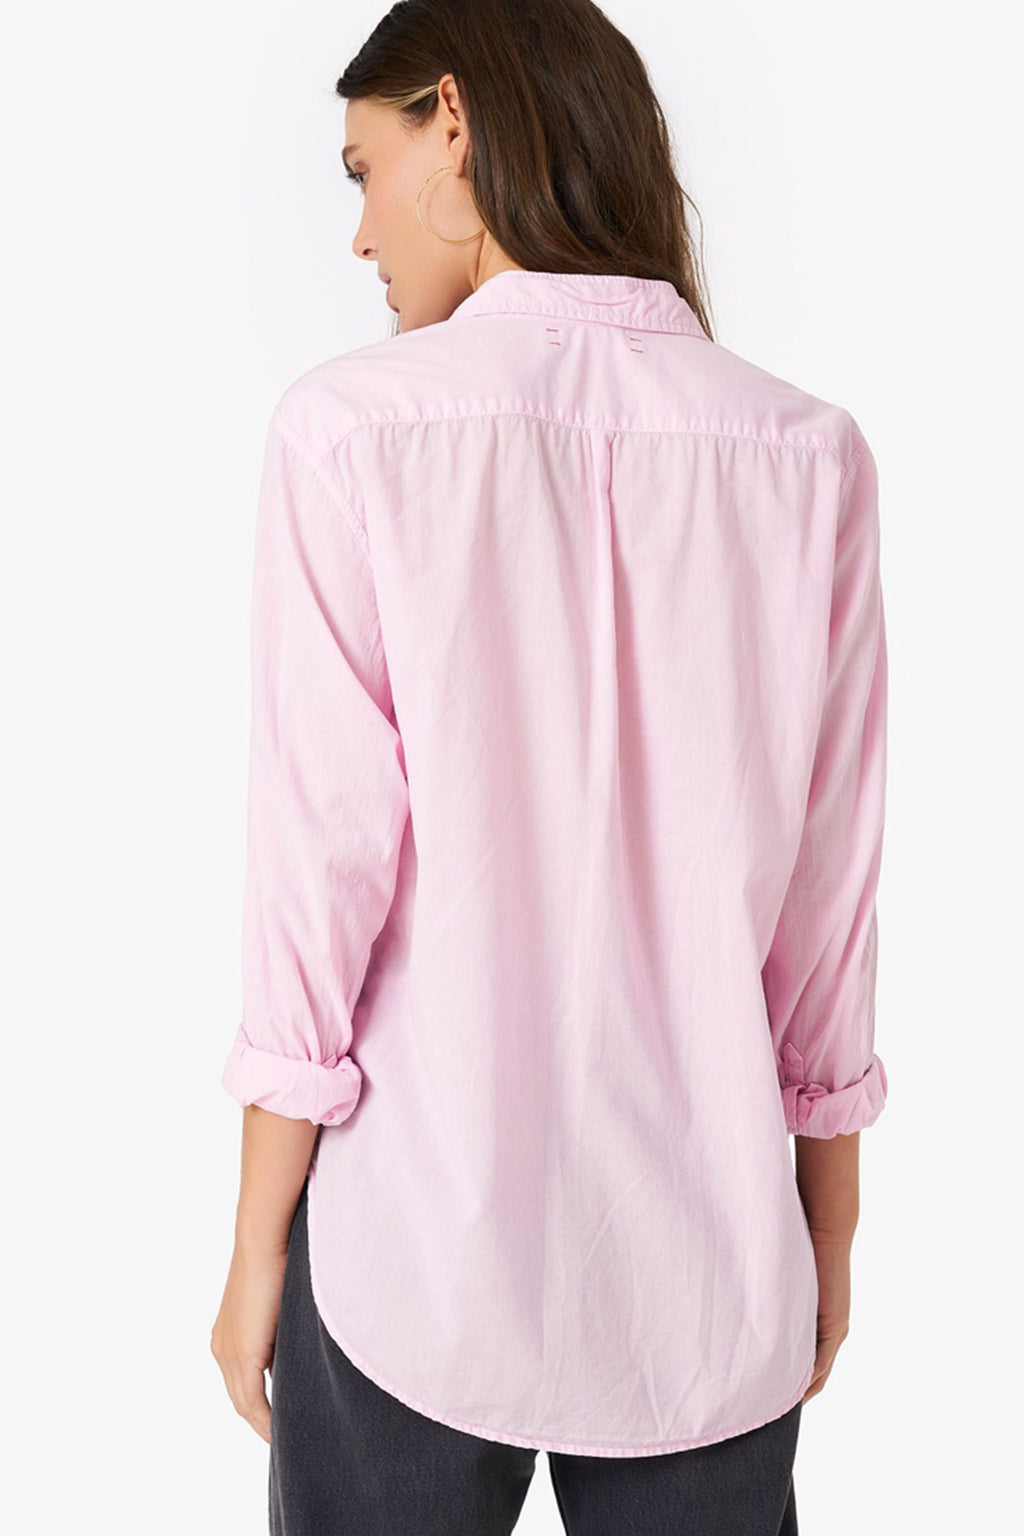 Xirena Beau Shirt in Crystalline Pink